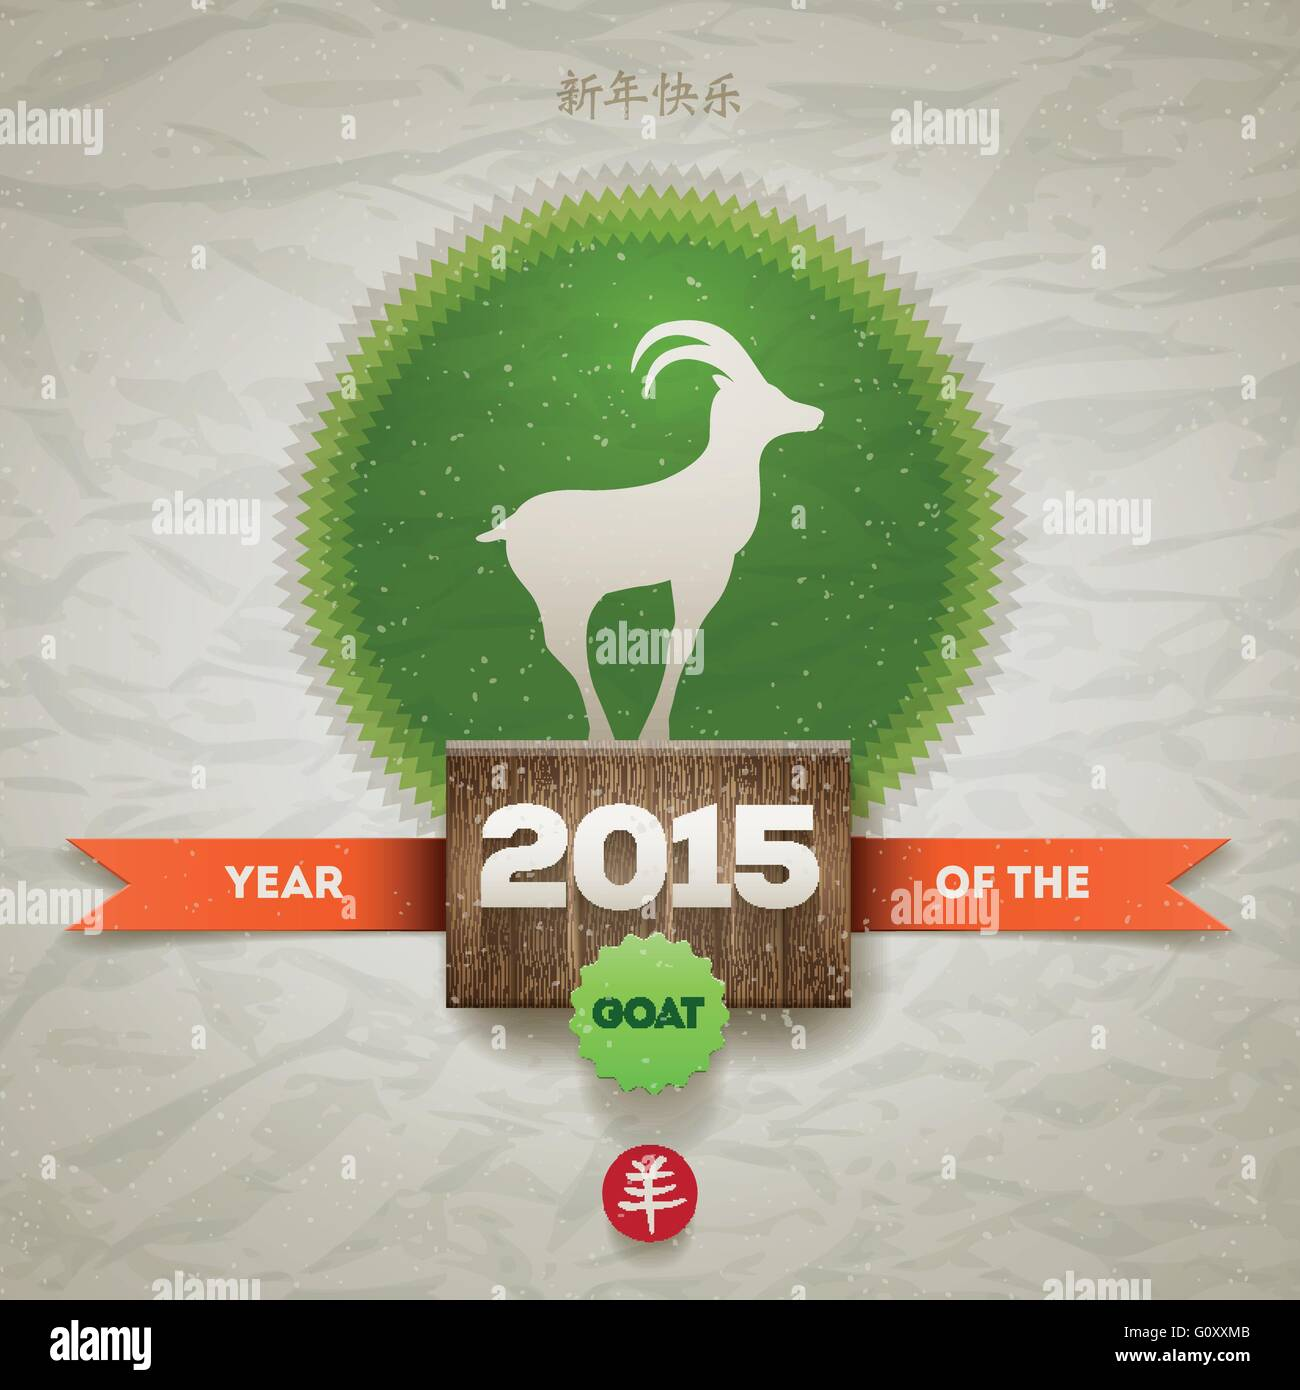 Vector design for Year of the goat 2015. - Stock Image